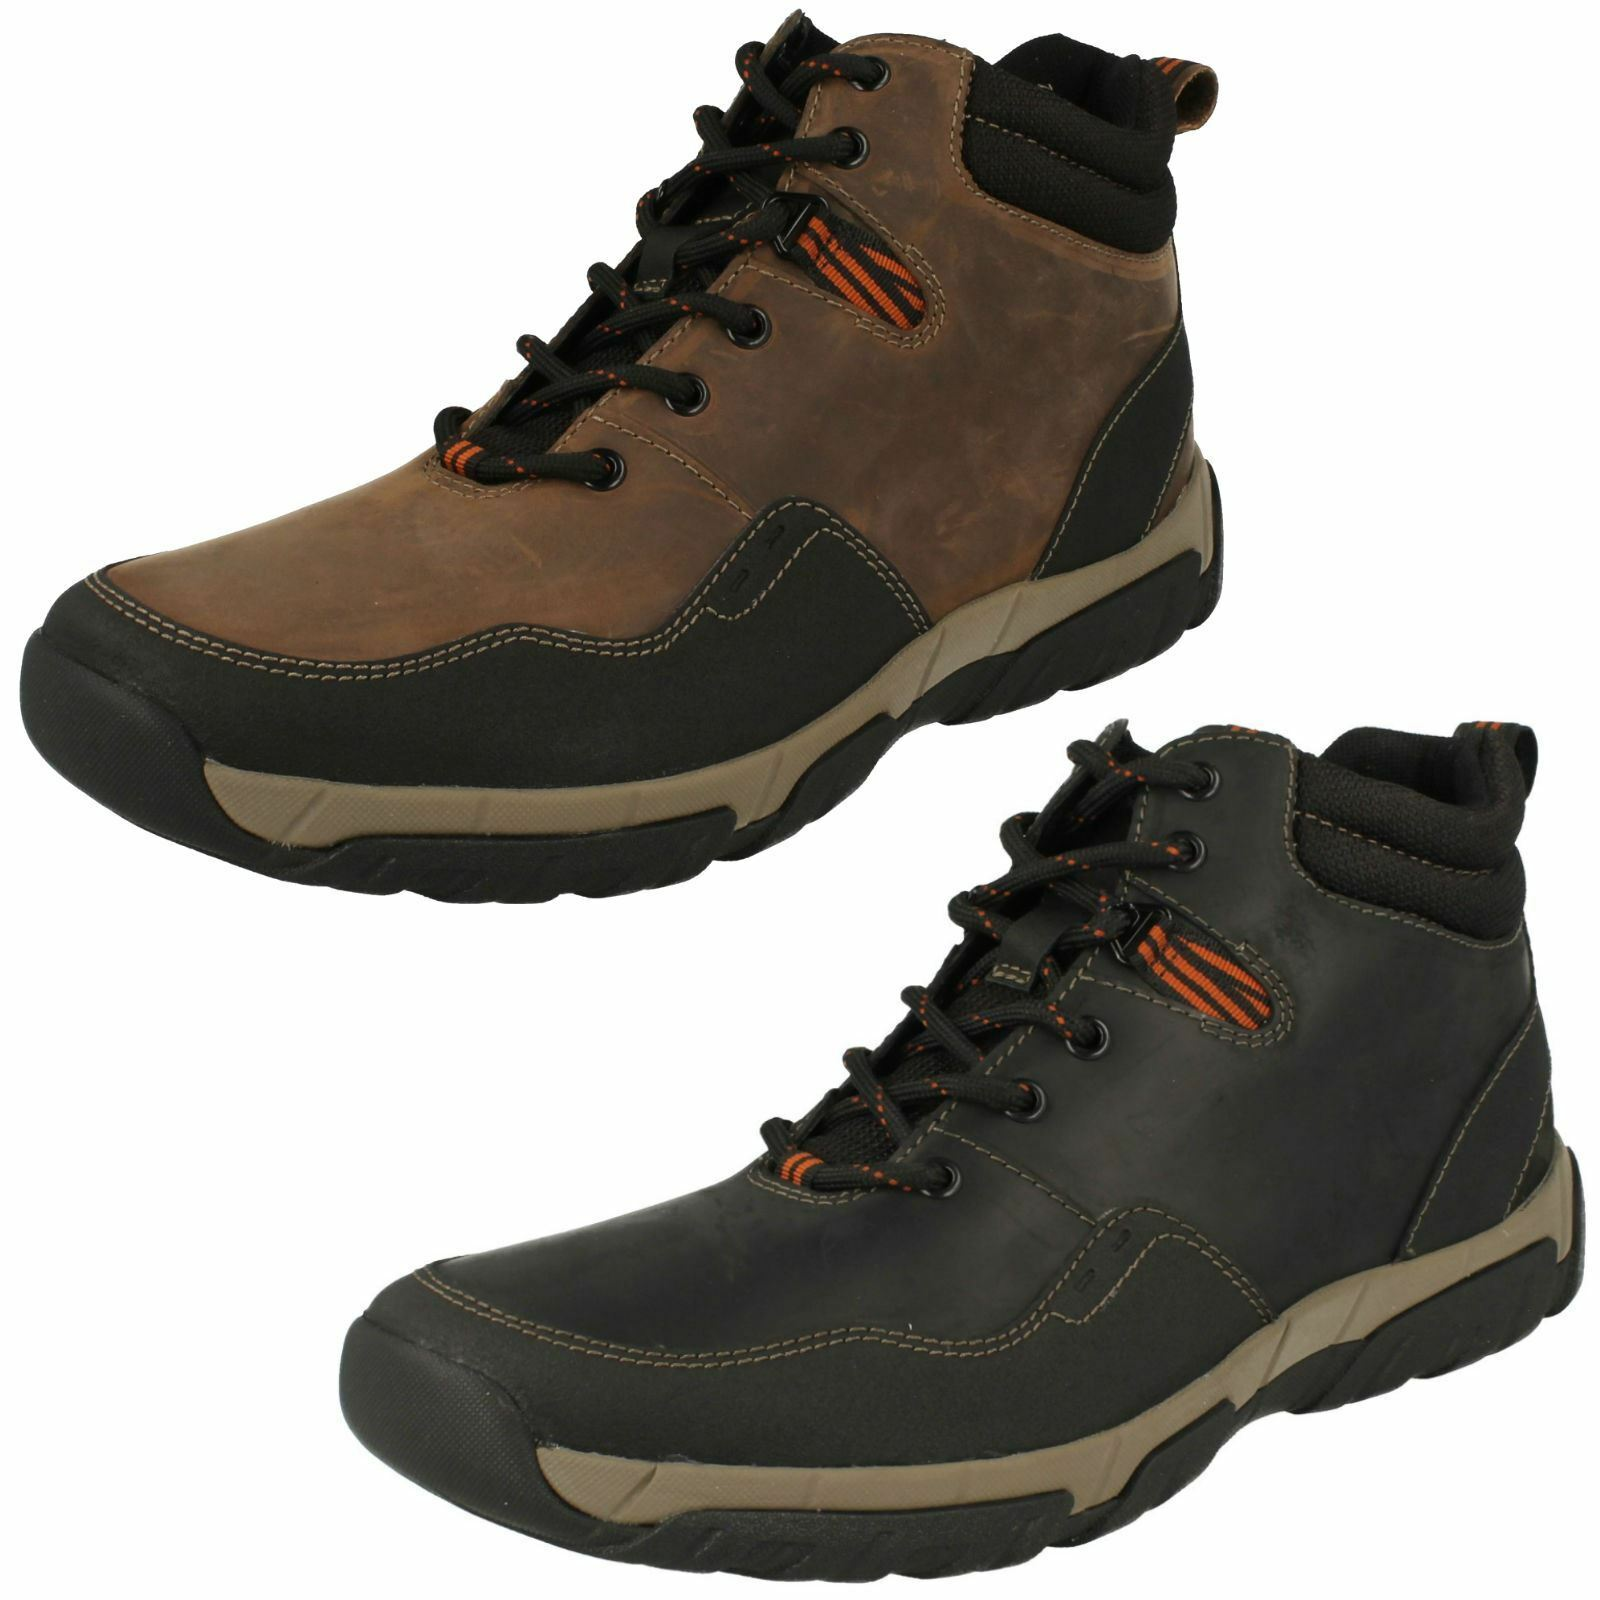 Mens Clarks Waterproof Lace Up Boots Walbeck Top